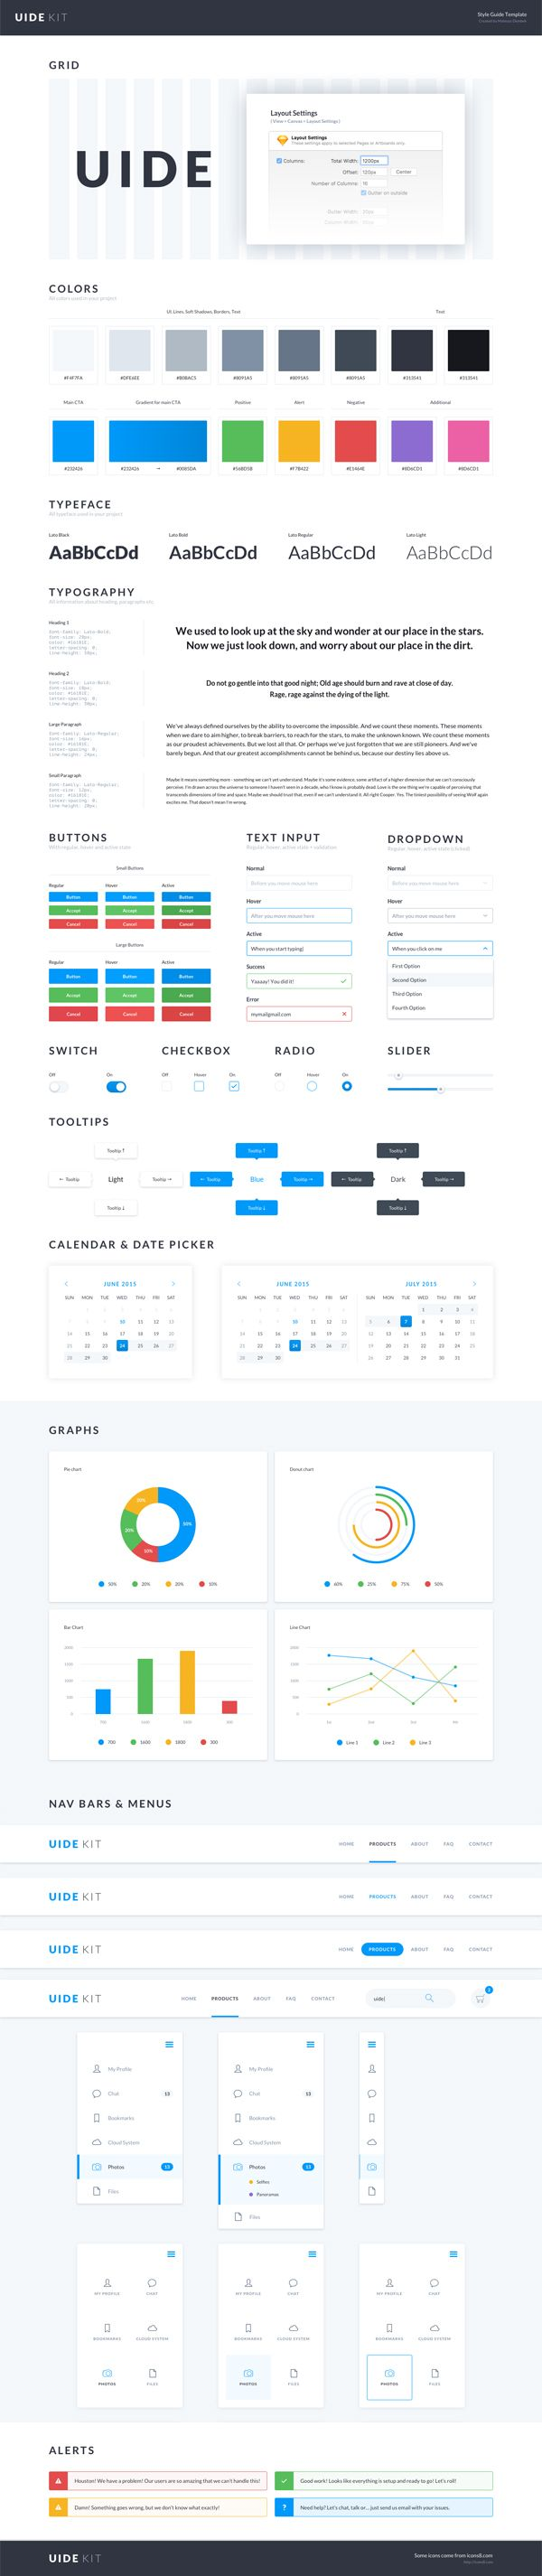 Modern Web Style Guide Template Vignette - Professional Resume ...